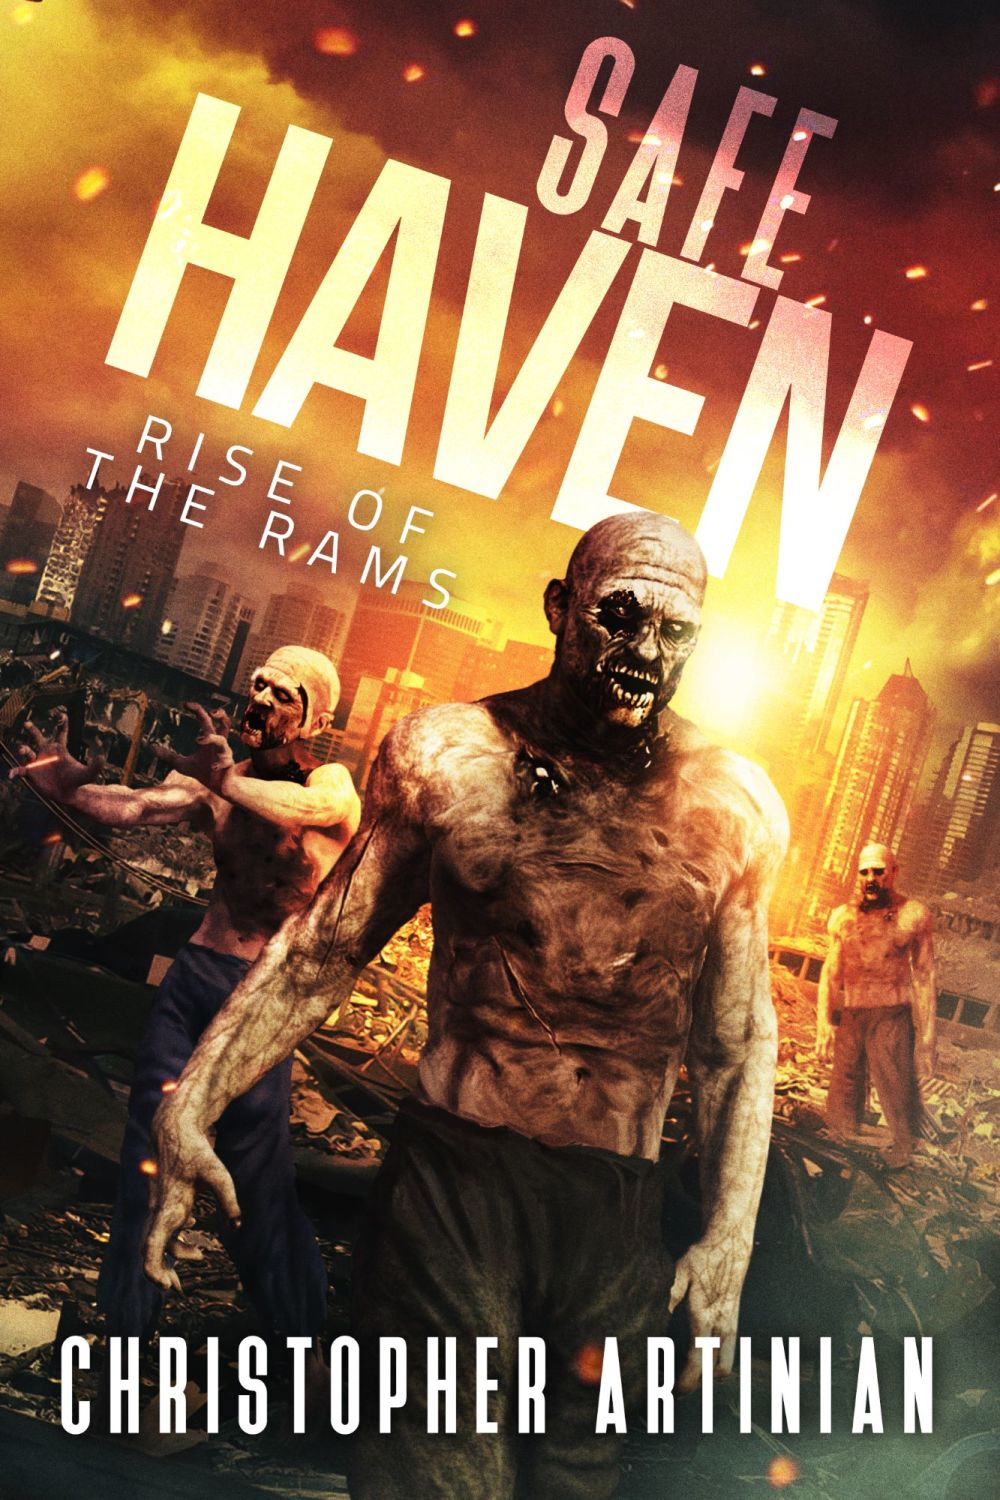 SAFE HAVEN: RISE OF THE RAMS (CVR 2) (SIGNED A4 PRINT)